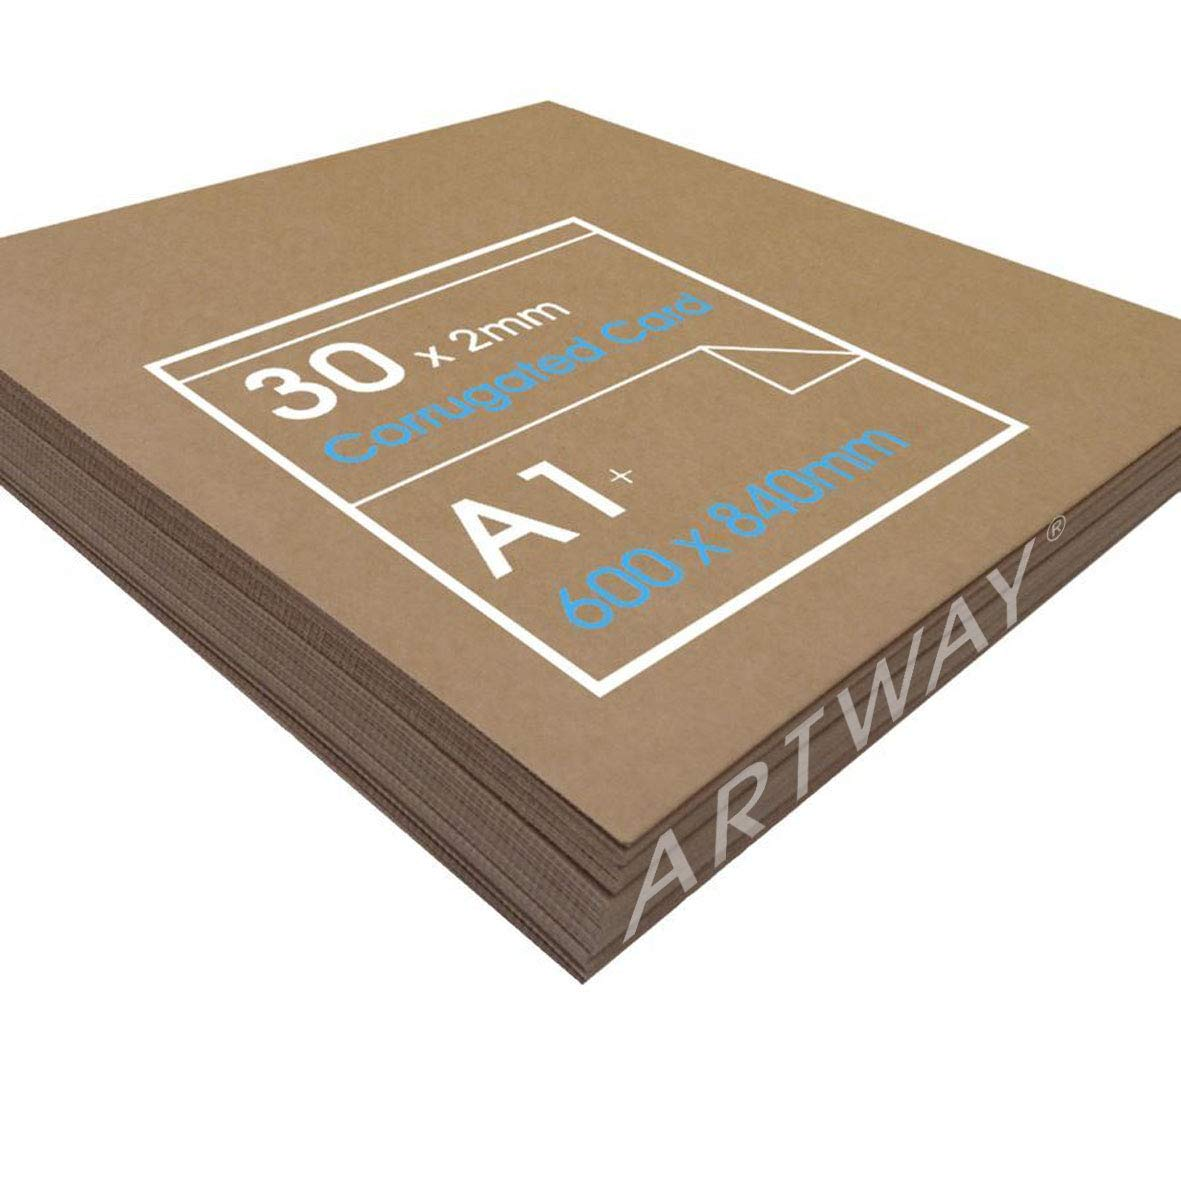 Corrugated Card for Arts, Crafts & Model Building. 30 Sheets of 840mm x 600mm x 2mm Smurfit Kappa